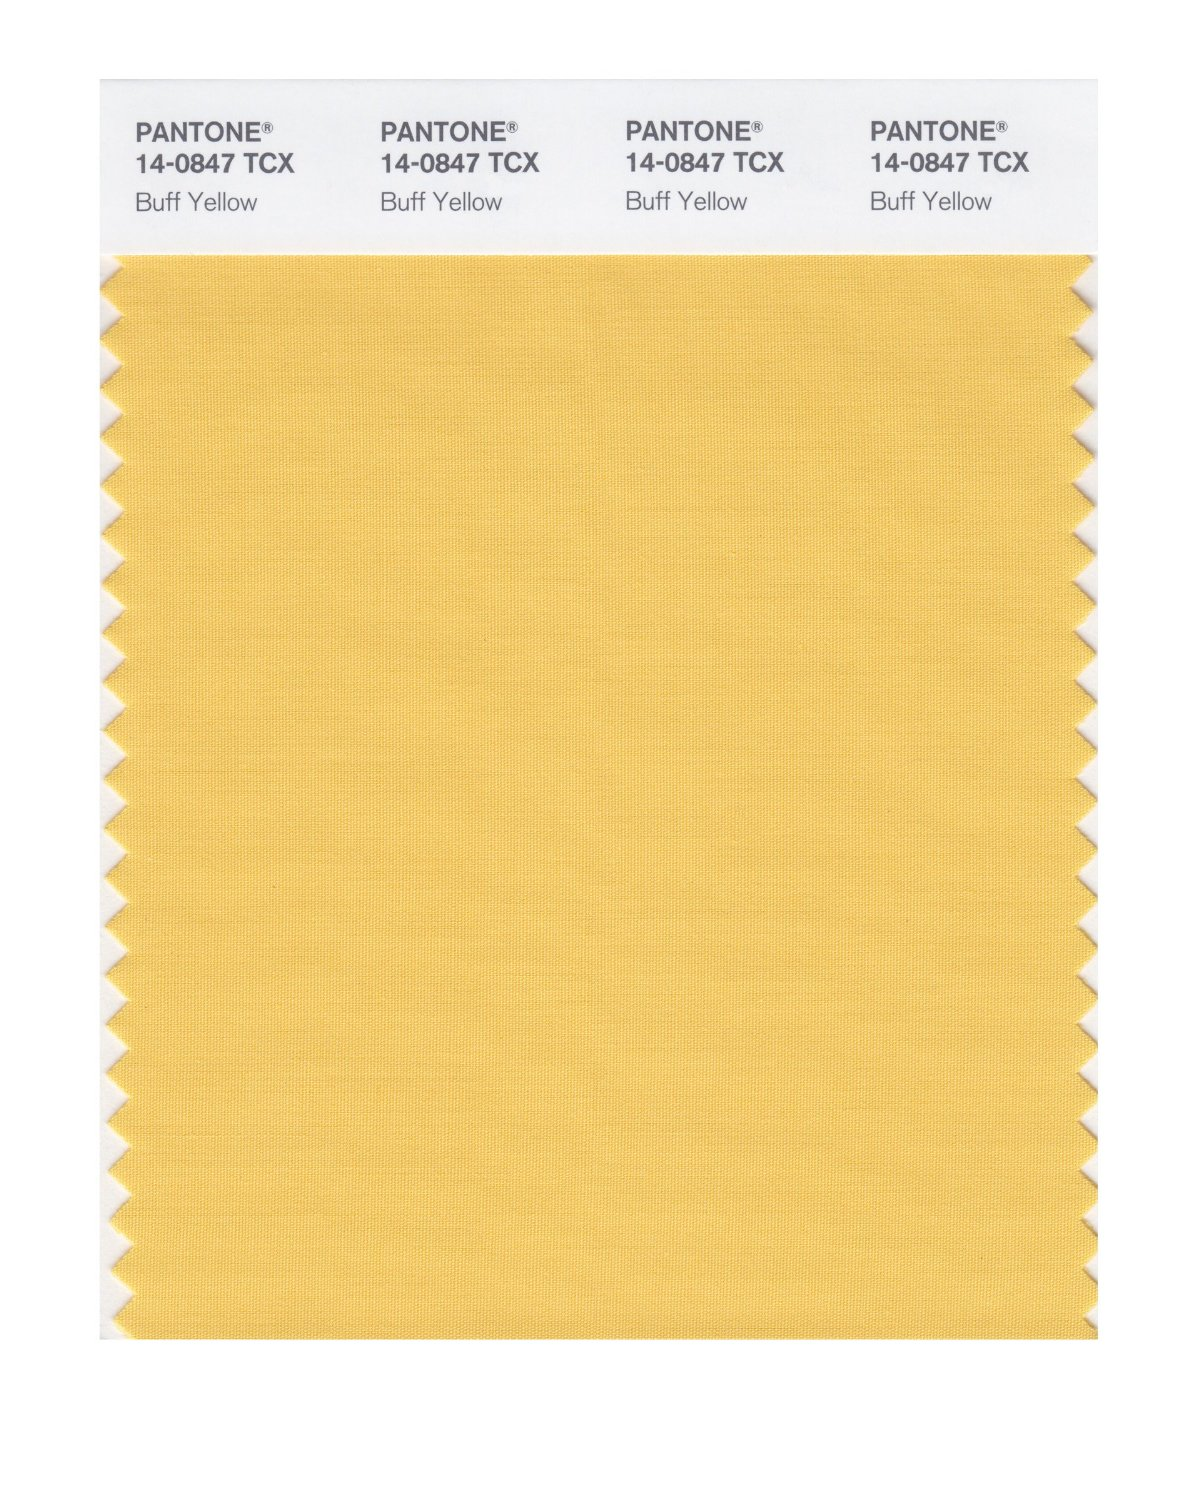 Pantone Smart Swatch 14-0847 Buff Yellow